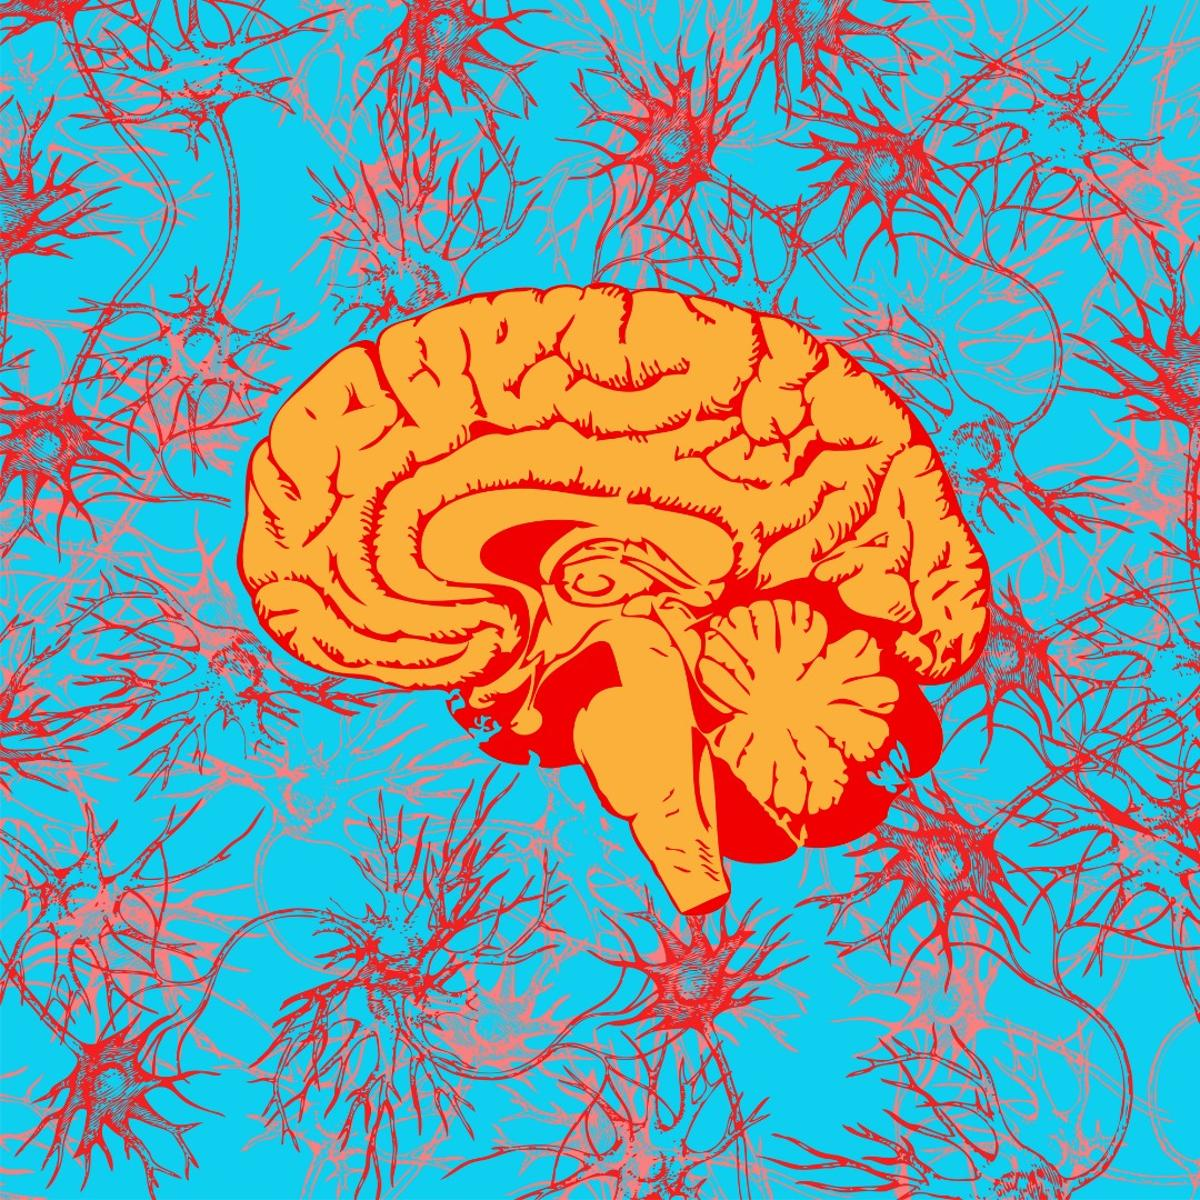 The Centre for Psychedelics Research will pursue study into the clinical use of psychedelics to treat a number of mental health conditions